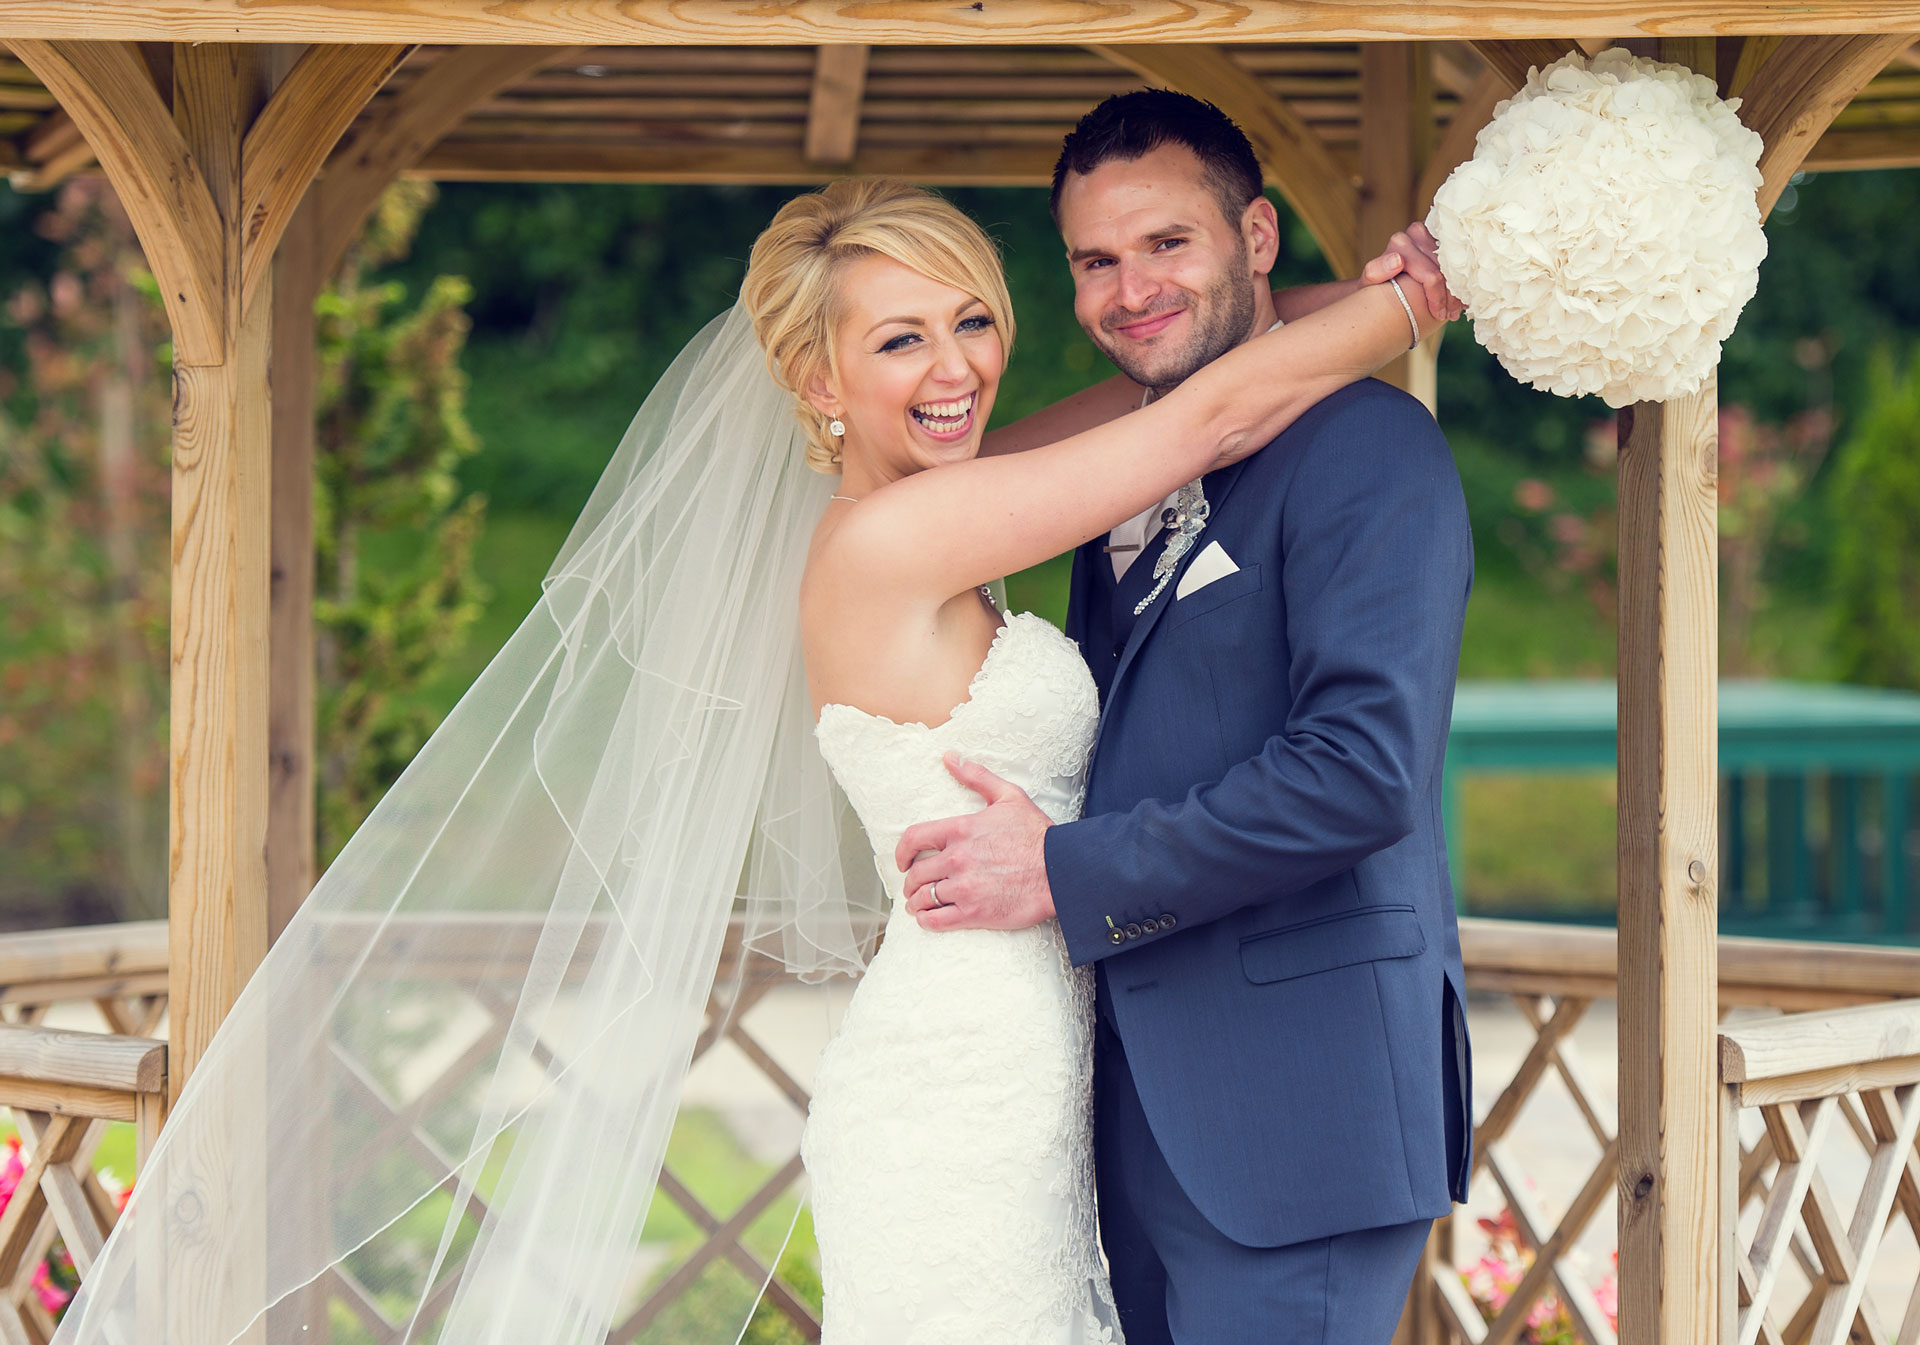 Photo of Gillian and Richard during their wedding day at the Killyhevlin Hotel, Co. Fermanagh, Northern Ireland.